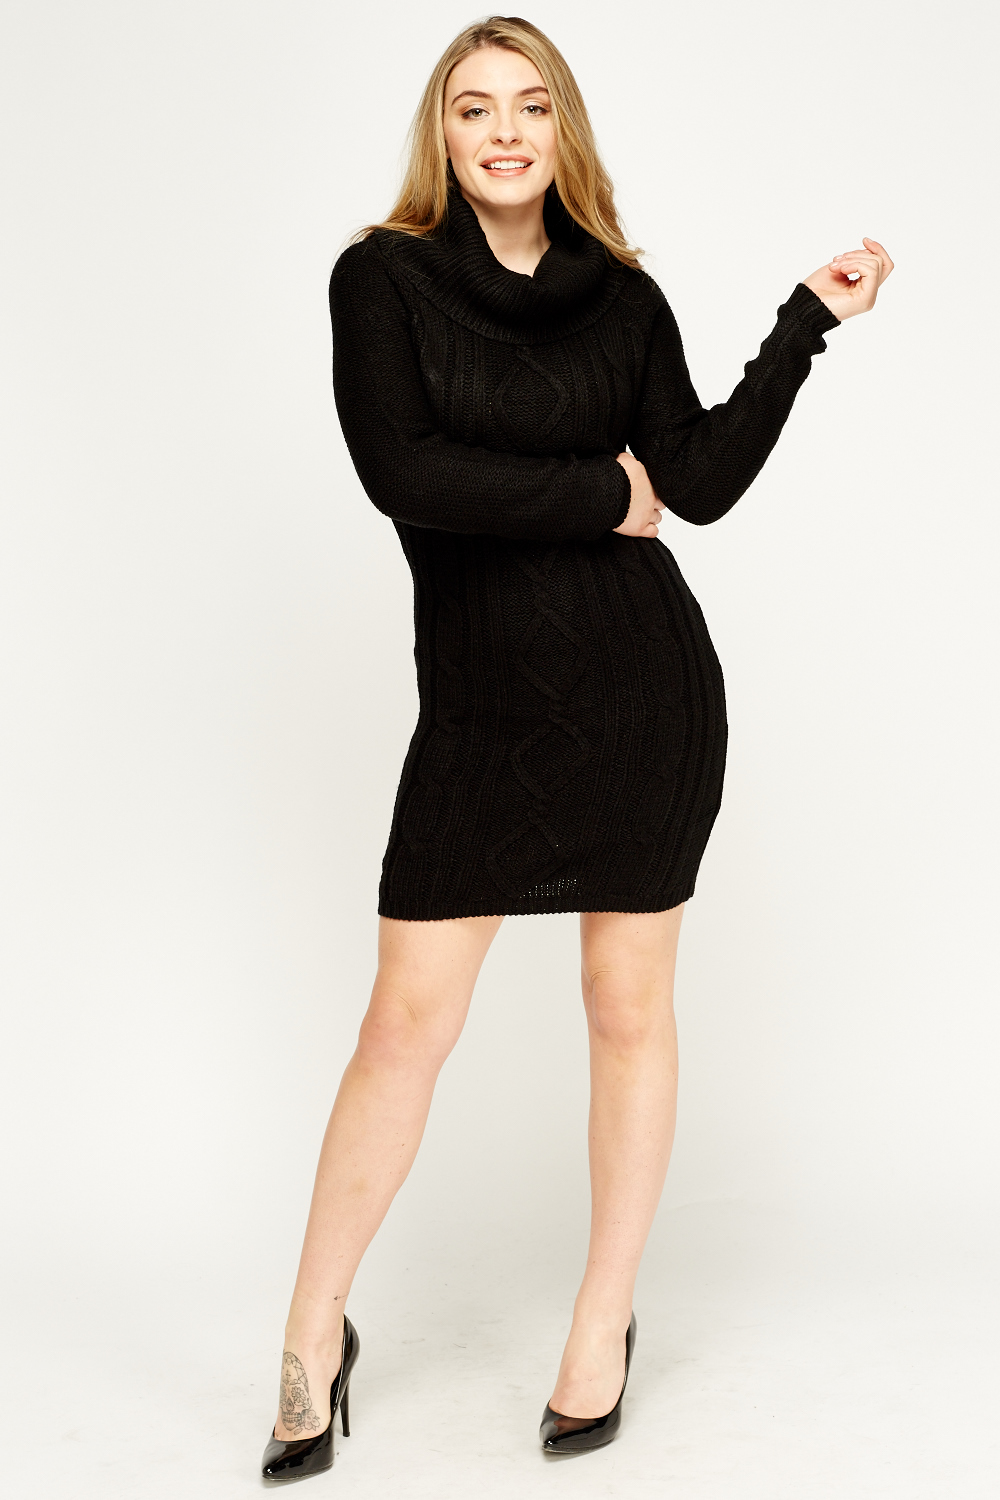 Cowl Neck Knitted Jumper Dress - Black or Grey - Just ?5